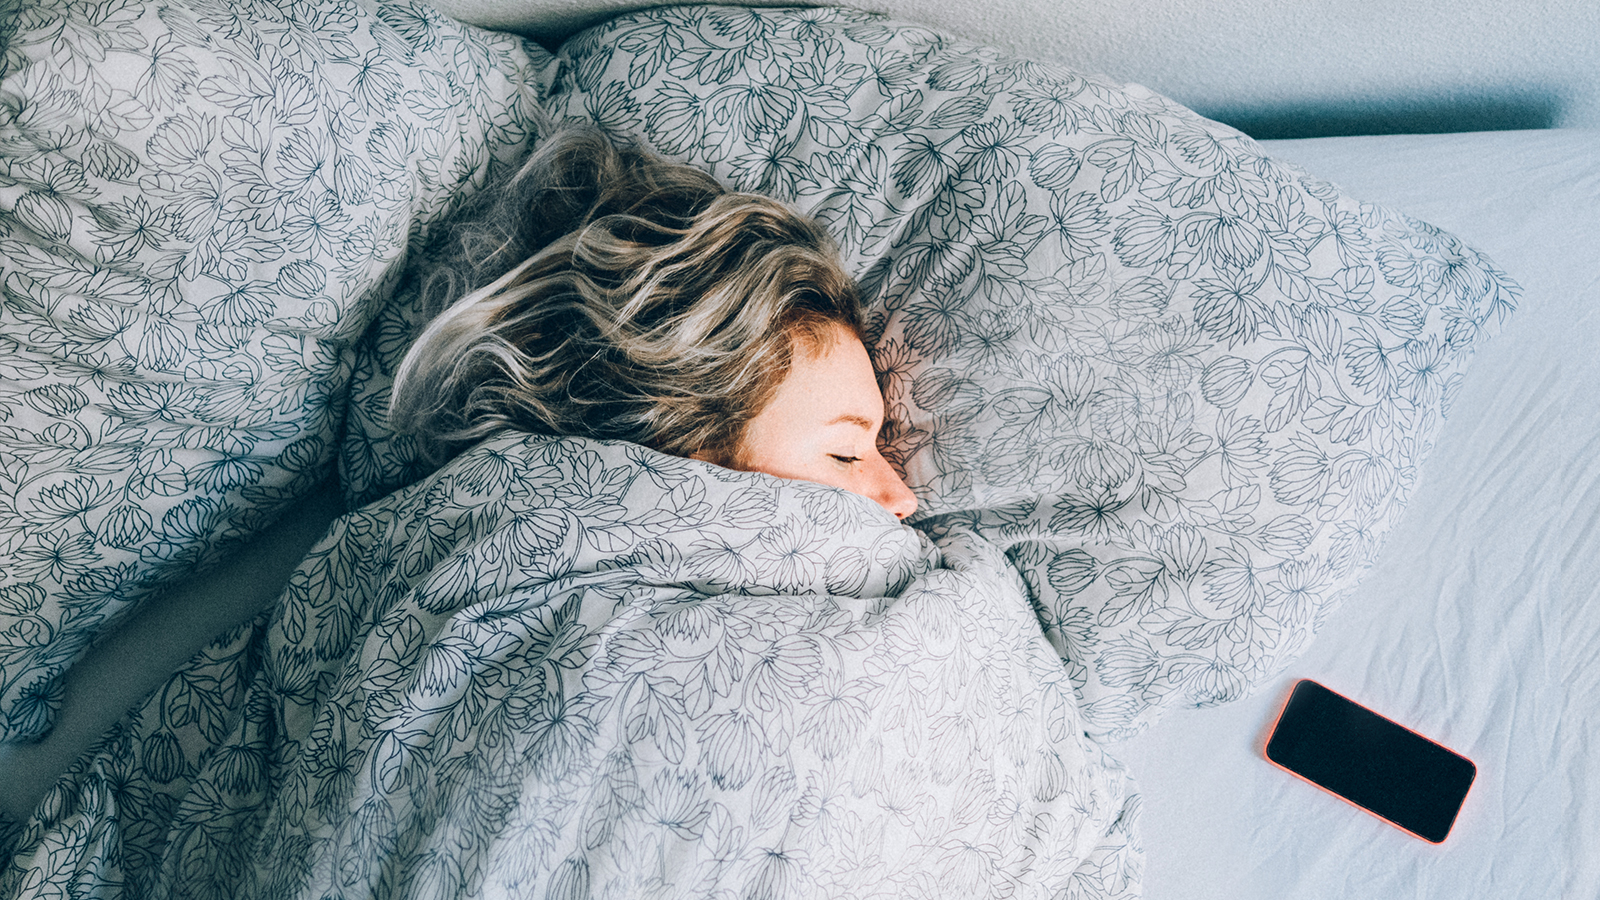 Get better sleep: 5 powerful tips from research